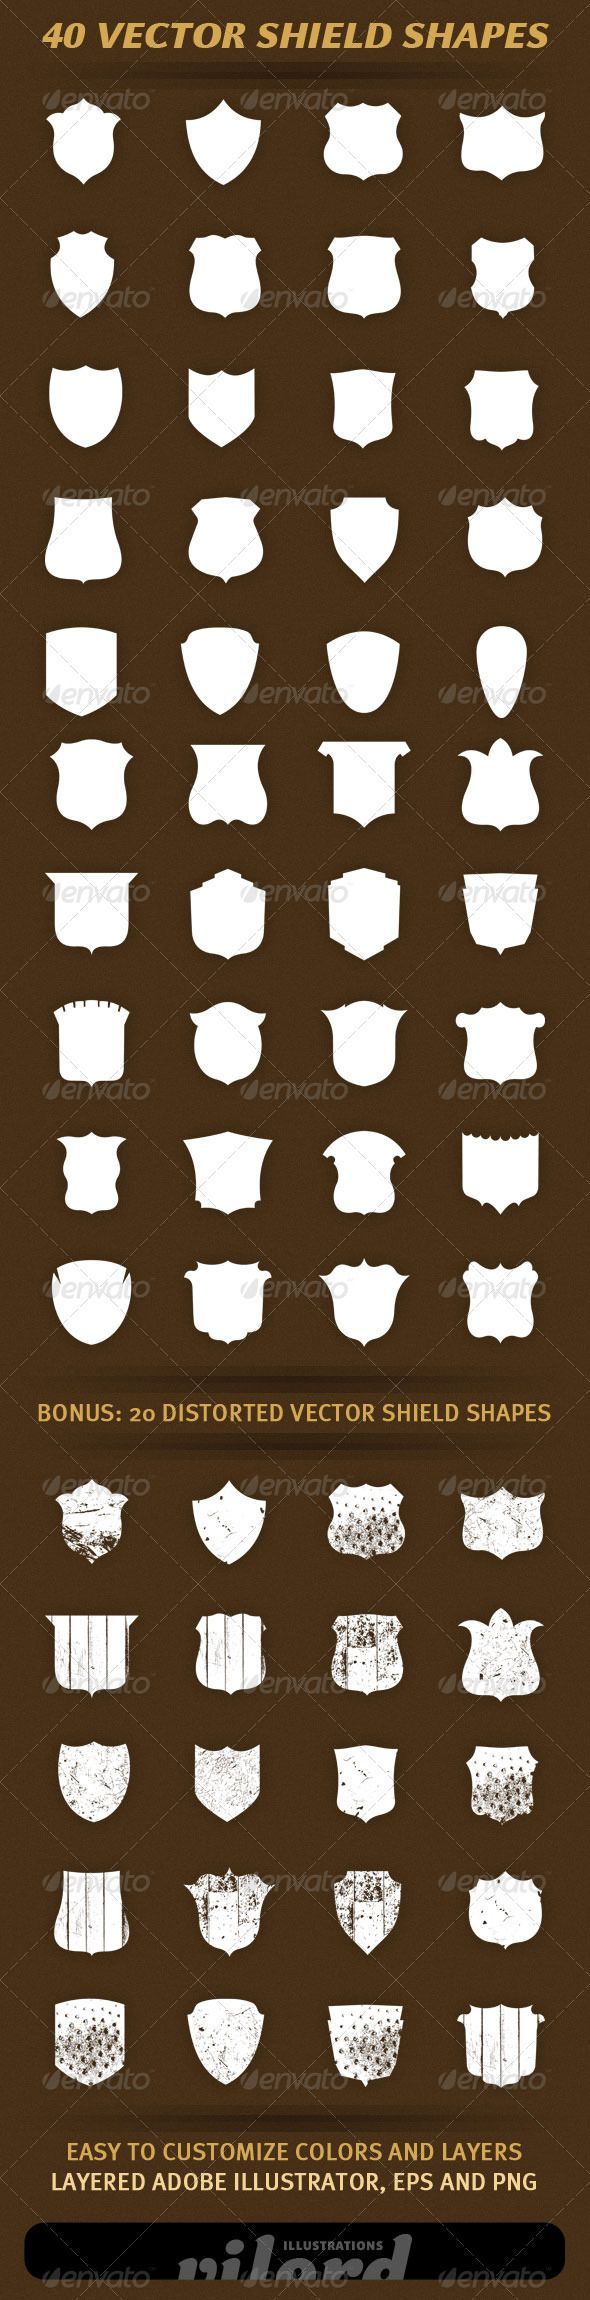 40 Vector Shield Shapes - http://graphicriver.net/item/40-vector-shield-shapes/1732596?ref=cruzine: